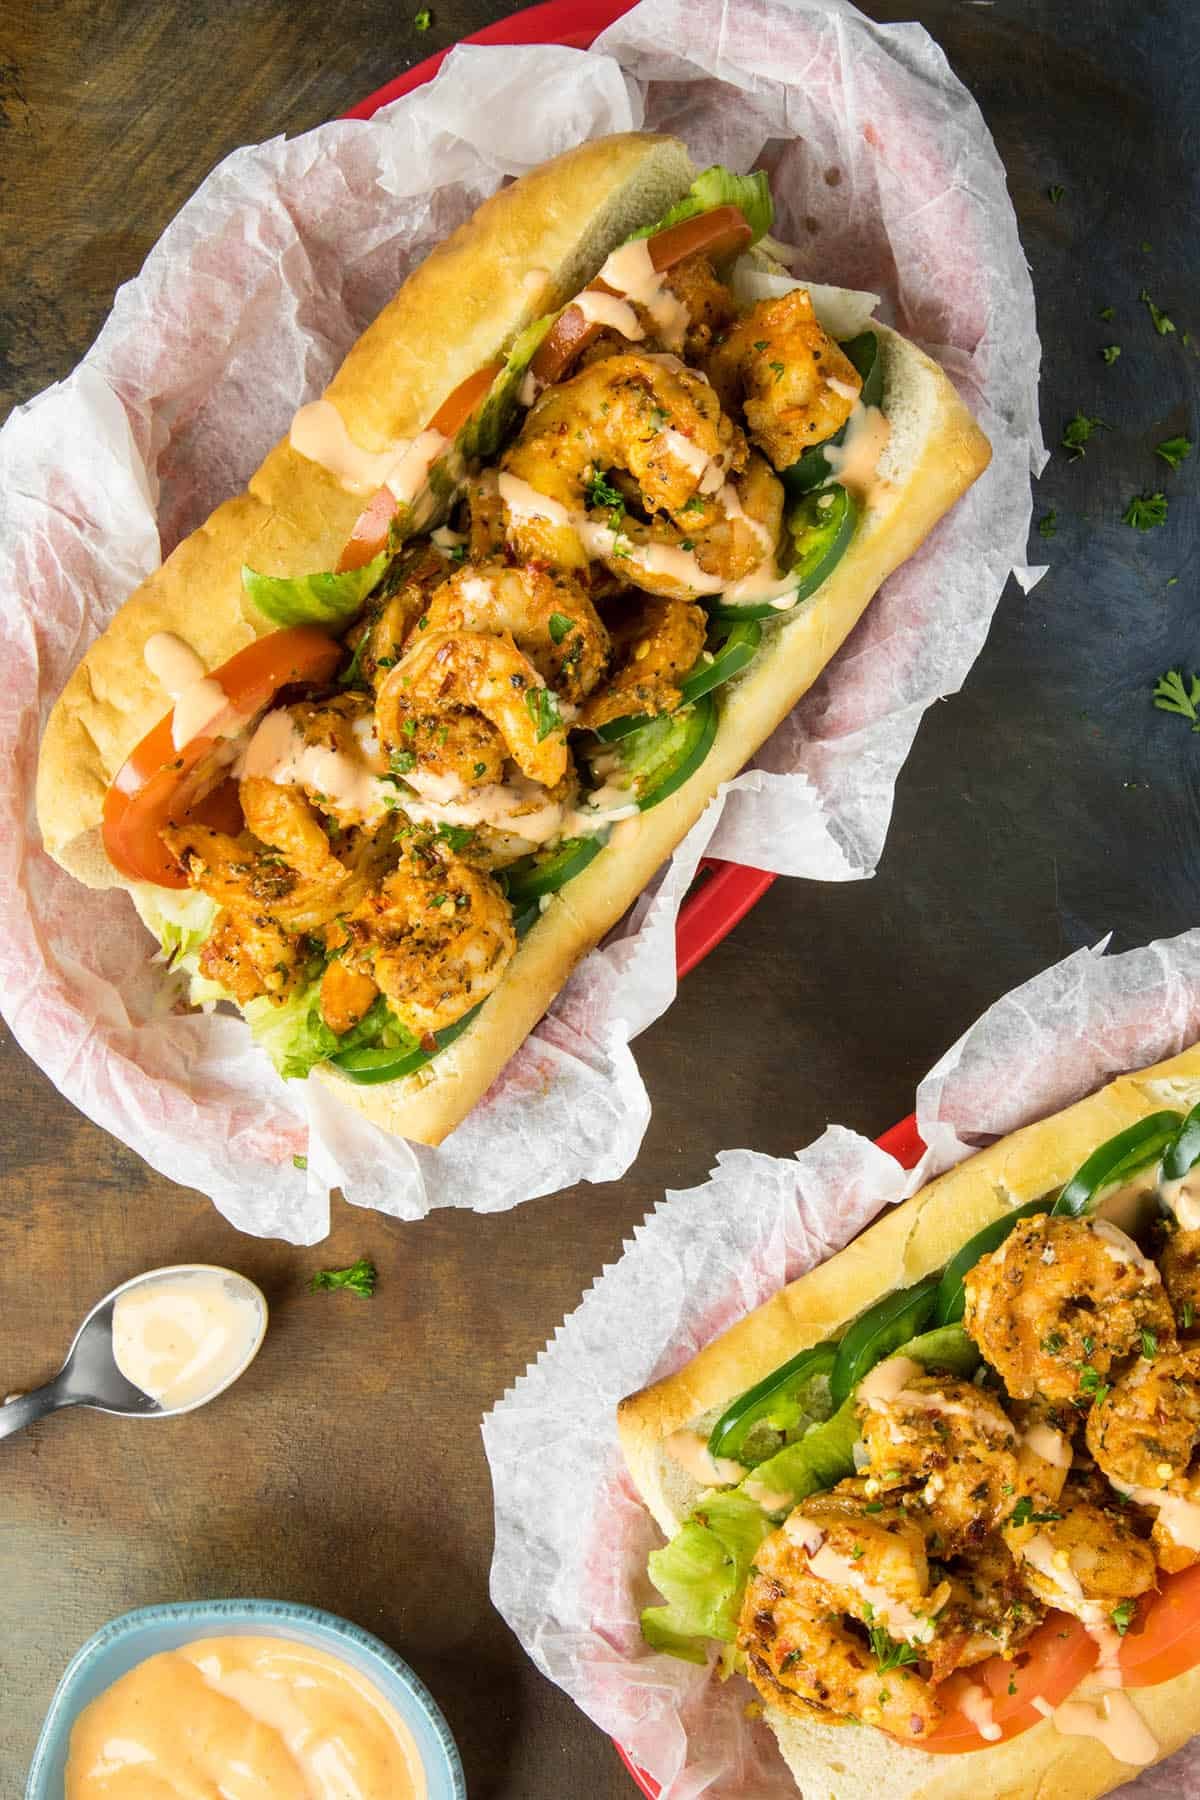 Grilled shrimp po boy sandwiches with extra Cajun sauce